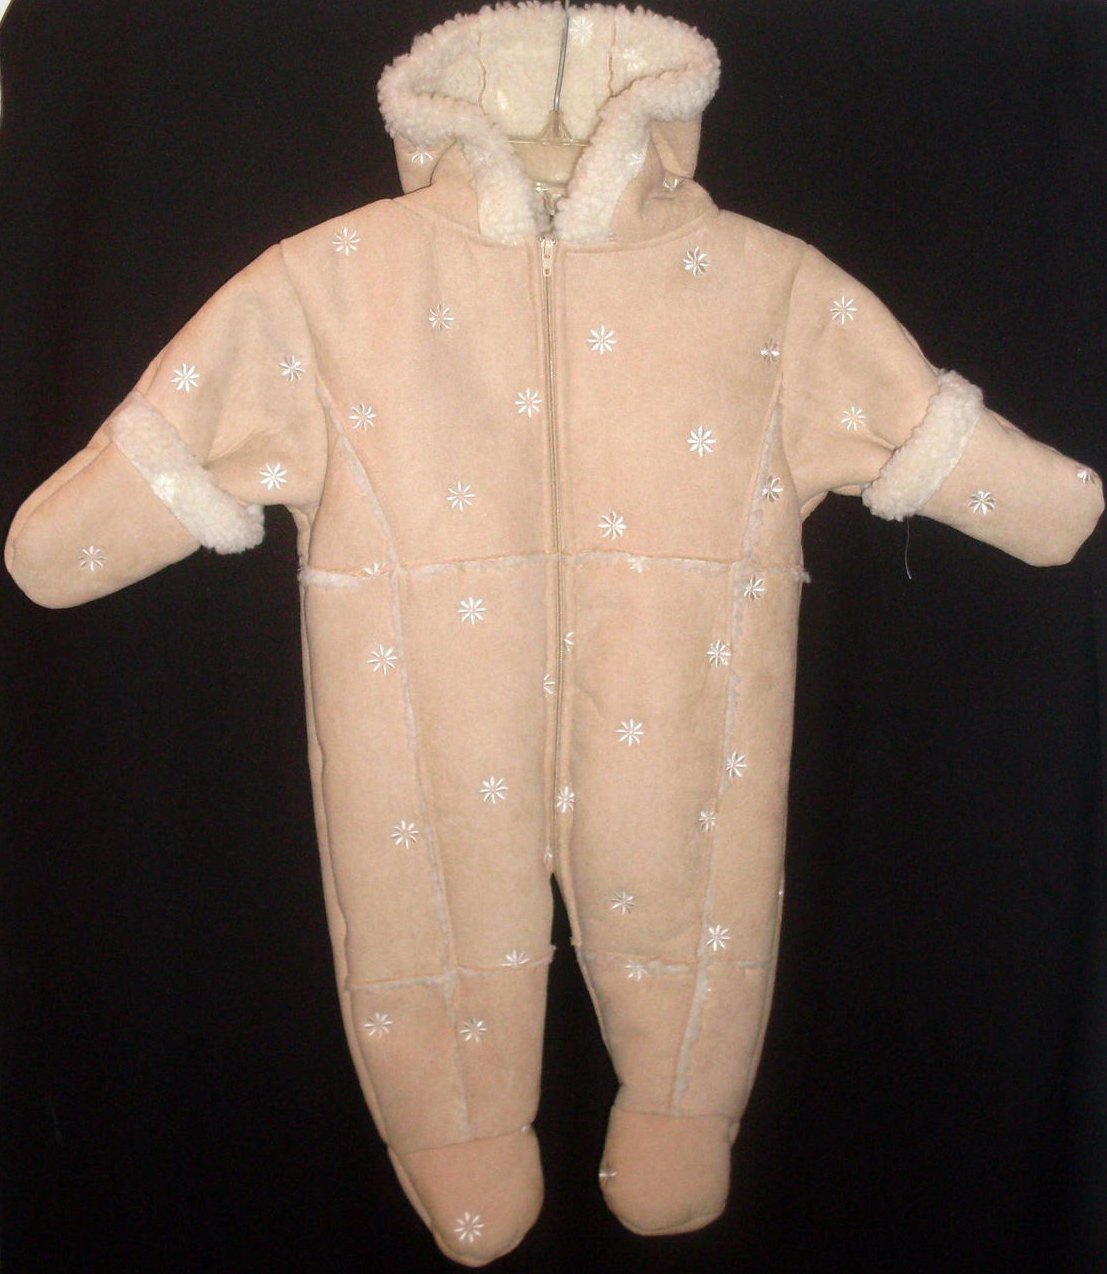 Lullababy Pram Suit Infant Girl 0-3 Month Fawn